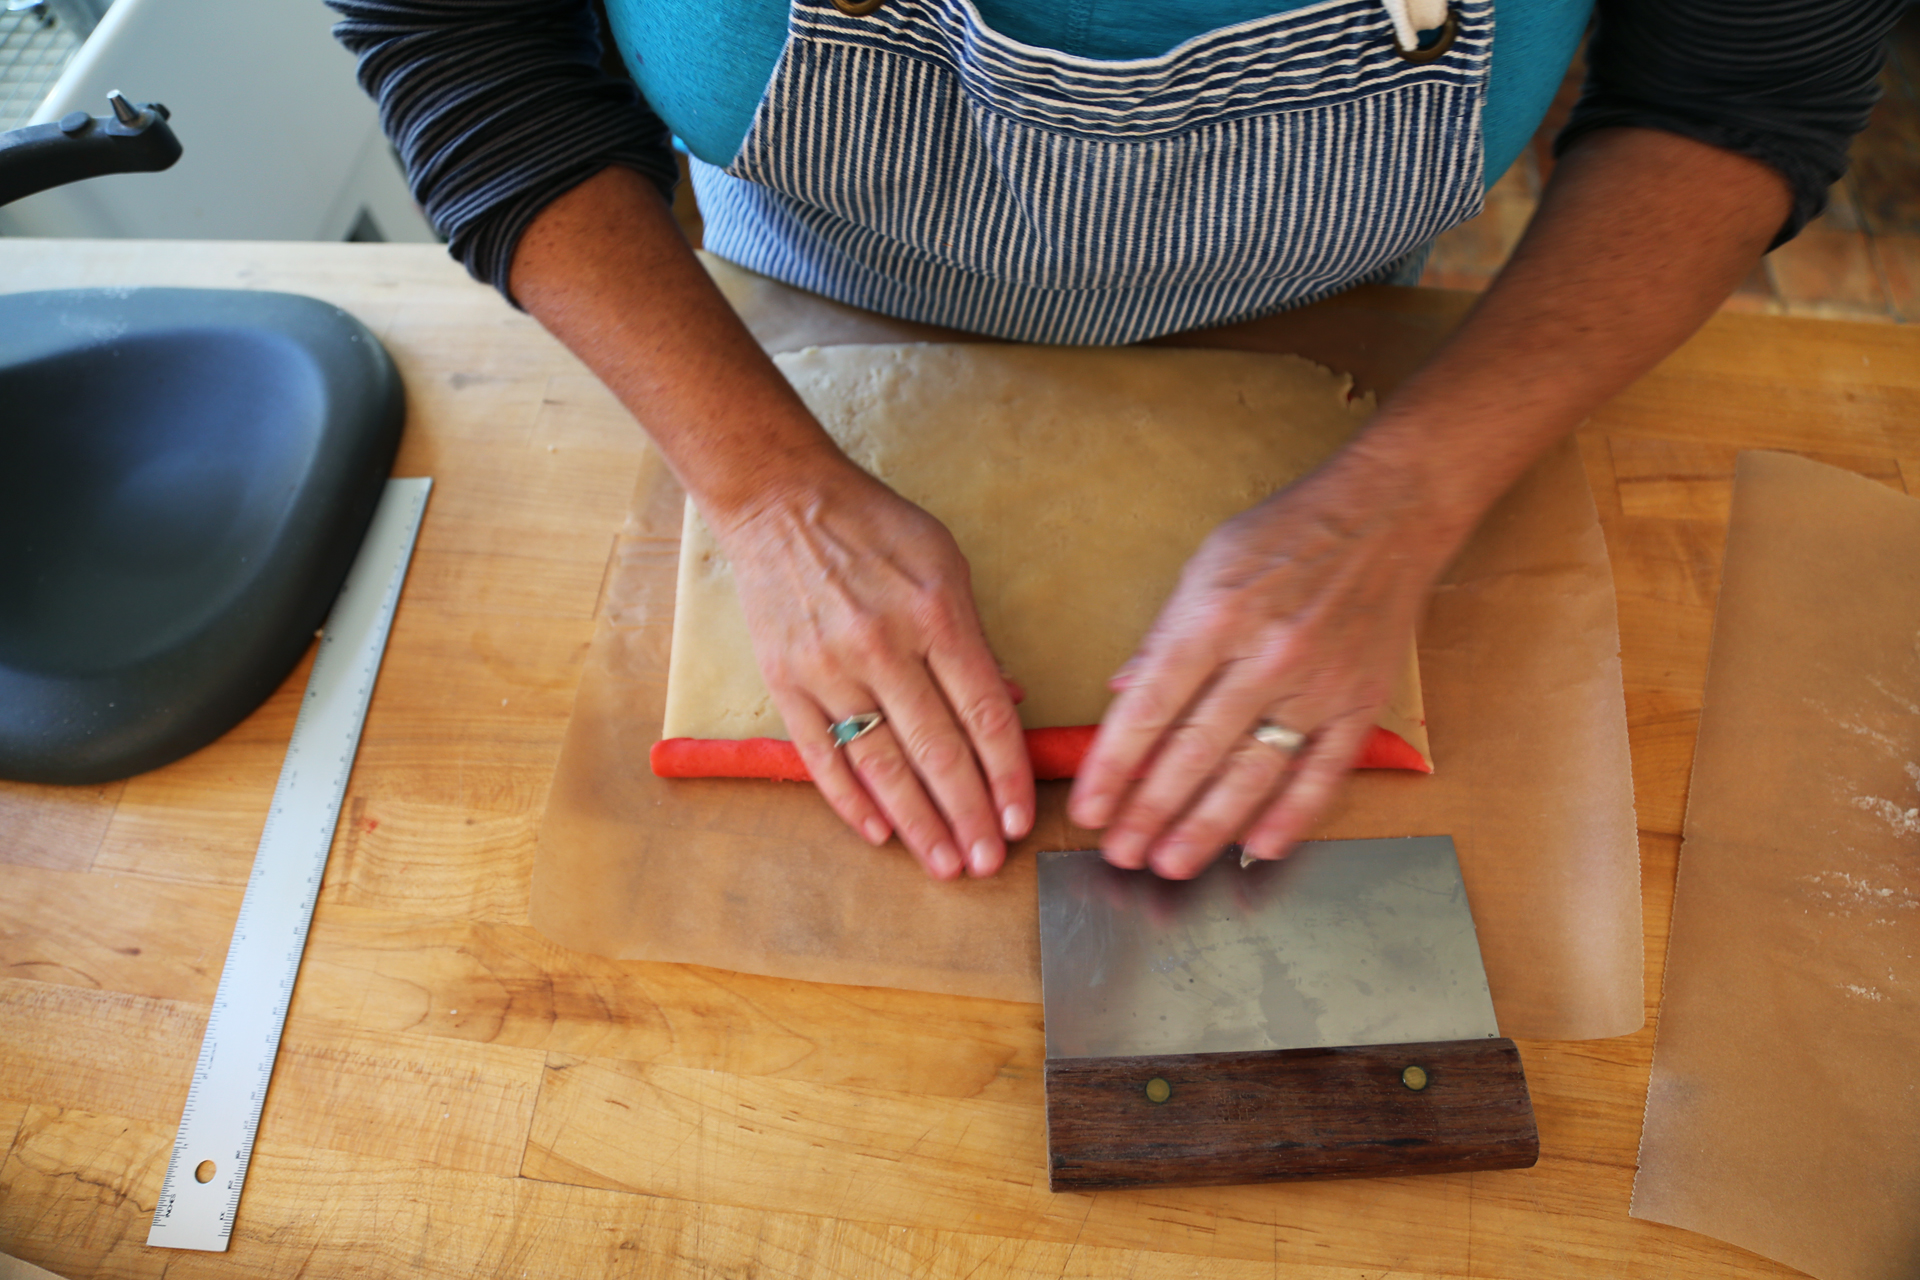 Using the paper to help, roll up the dough lengthwise into a tight log.